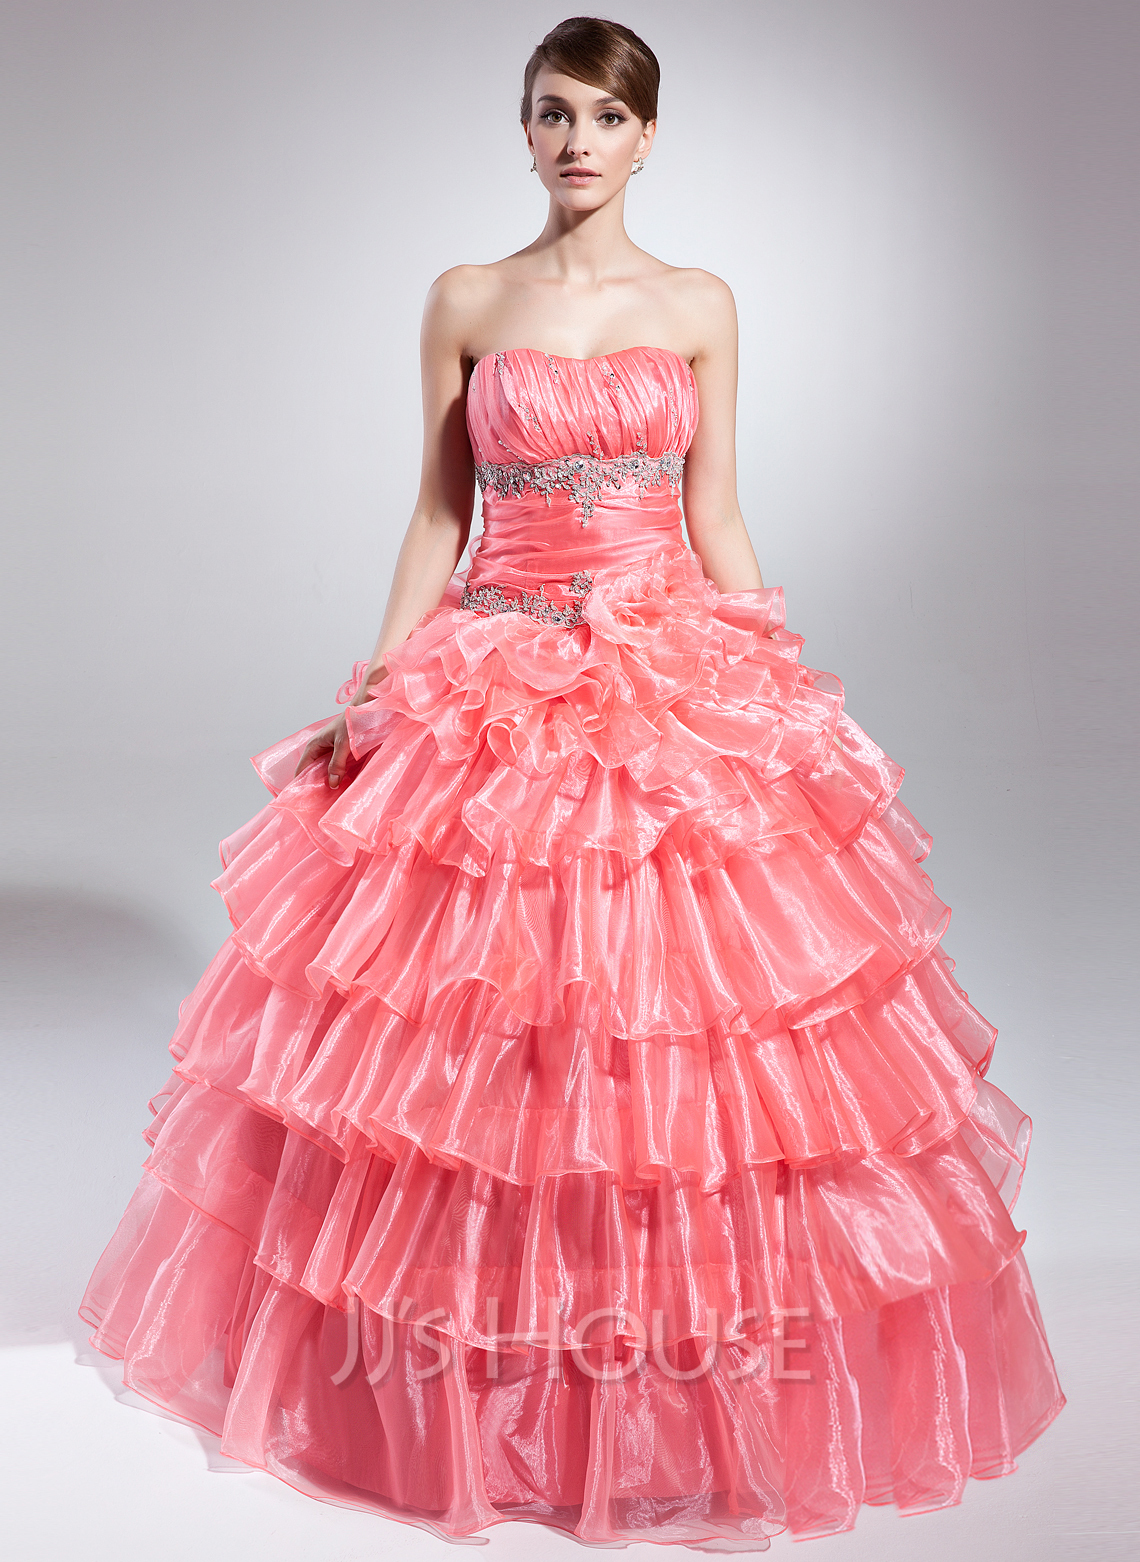 0b55099203 Ball-Gown Strapless Floor-Length Organza Quinceanera Dress With Beading  Appliques Lace Sequins Cascading. Loading zoom